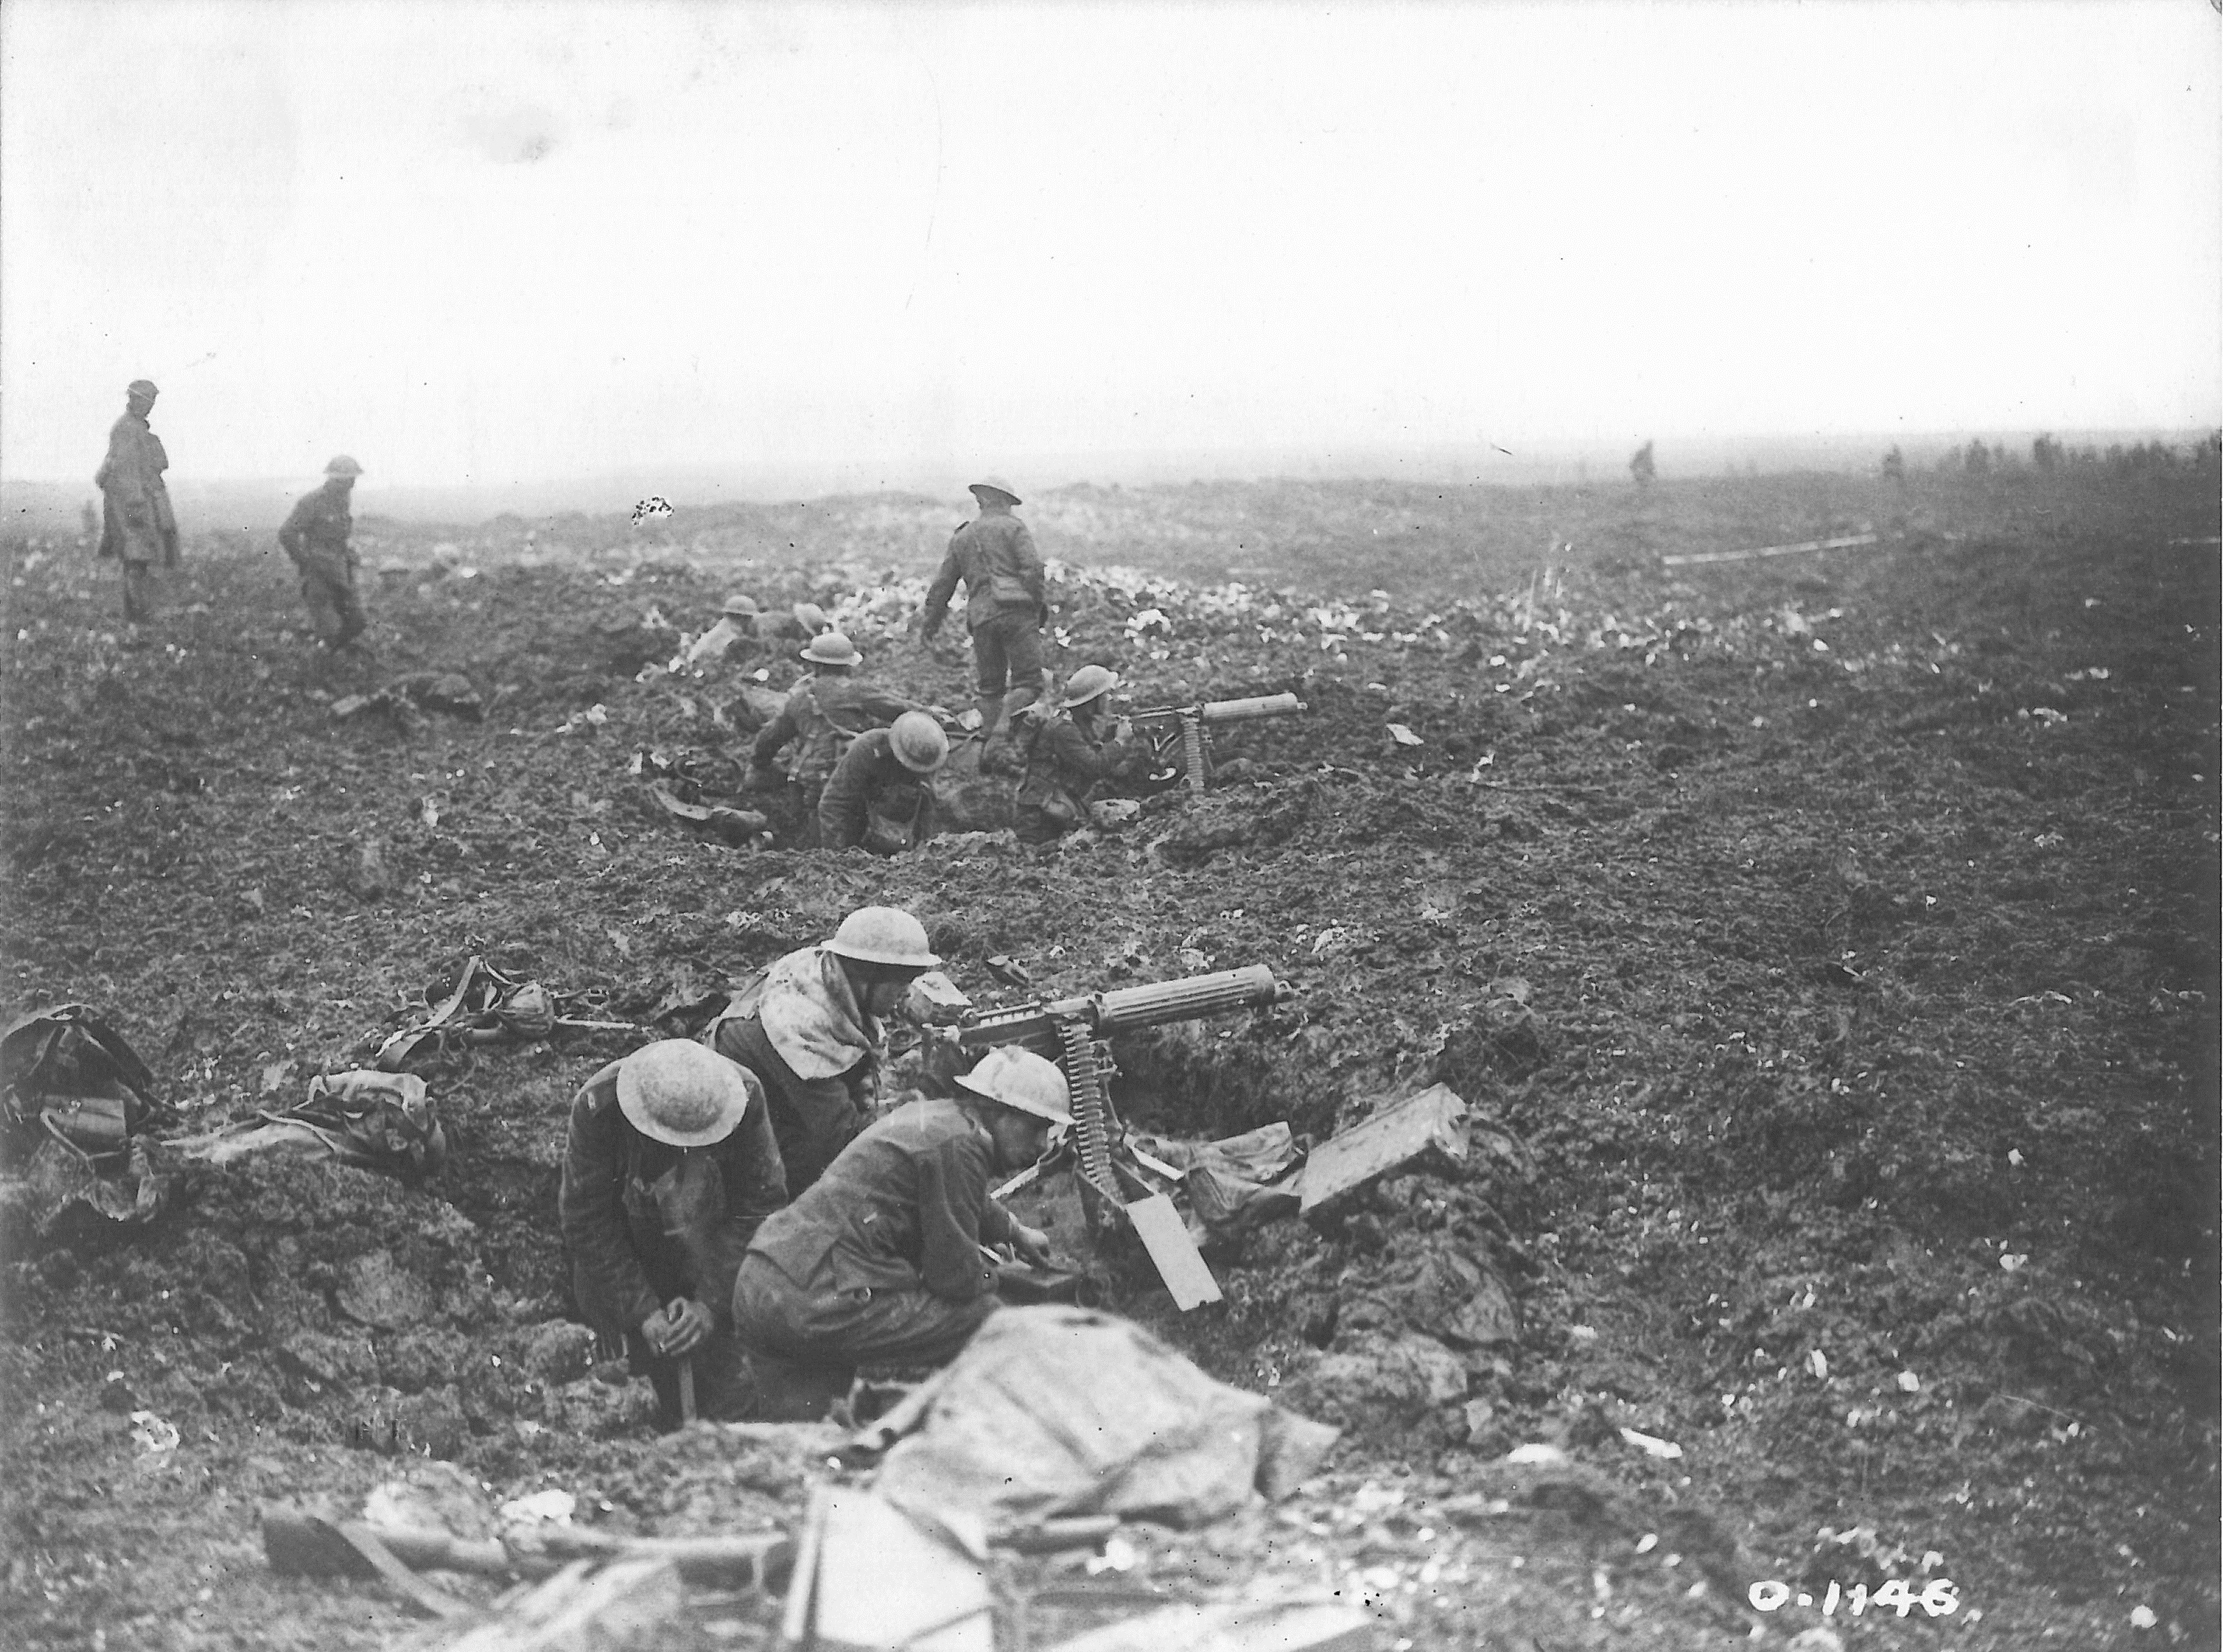 vimy ridge battle analysis 02 first world war photograph and document packages the battle of vimy ridge as part of a british offensive in april 1917, canadian soldiers captured the heavily fortified vimy ridge in northern france.